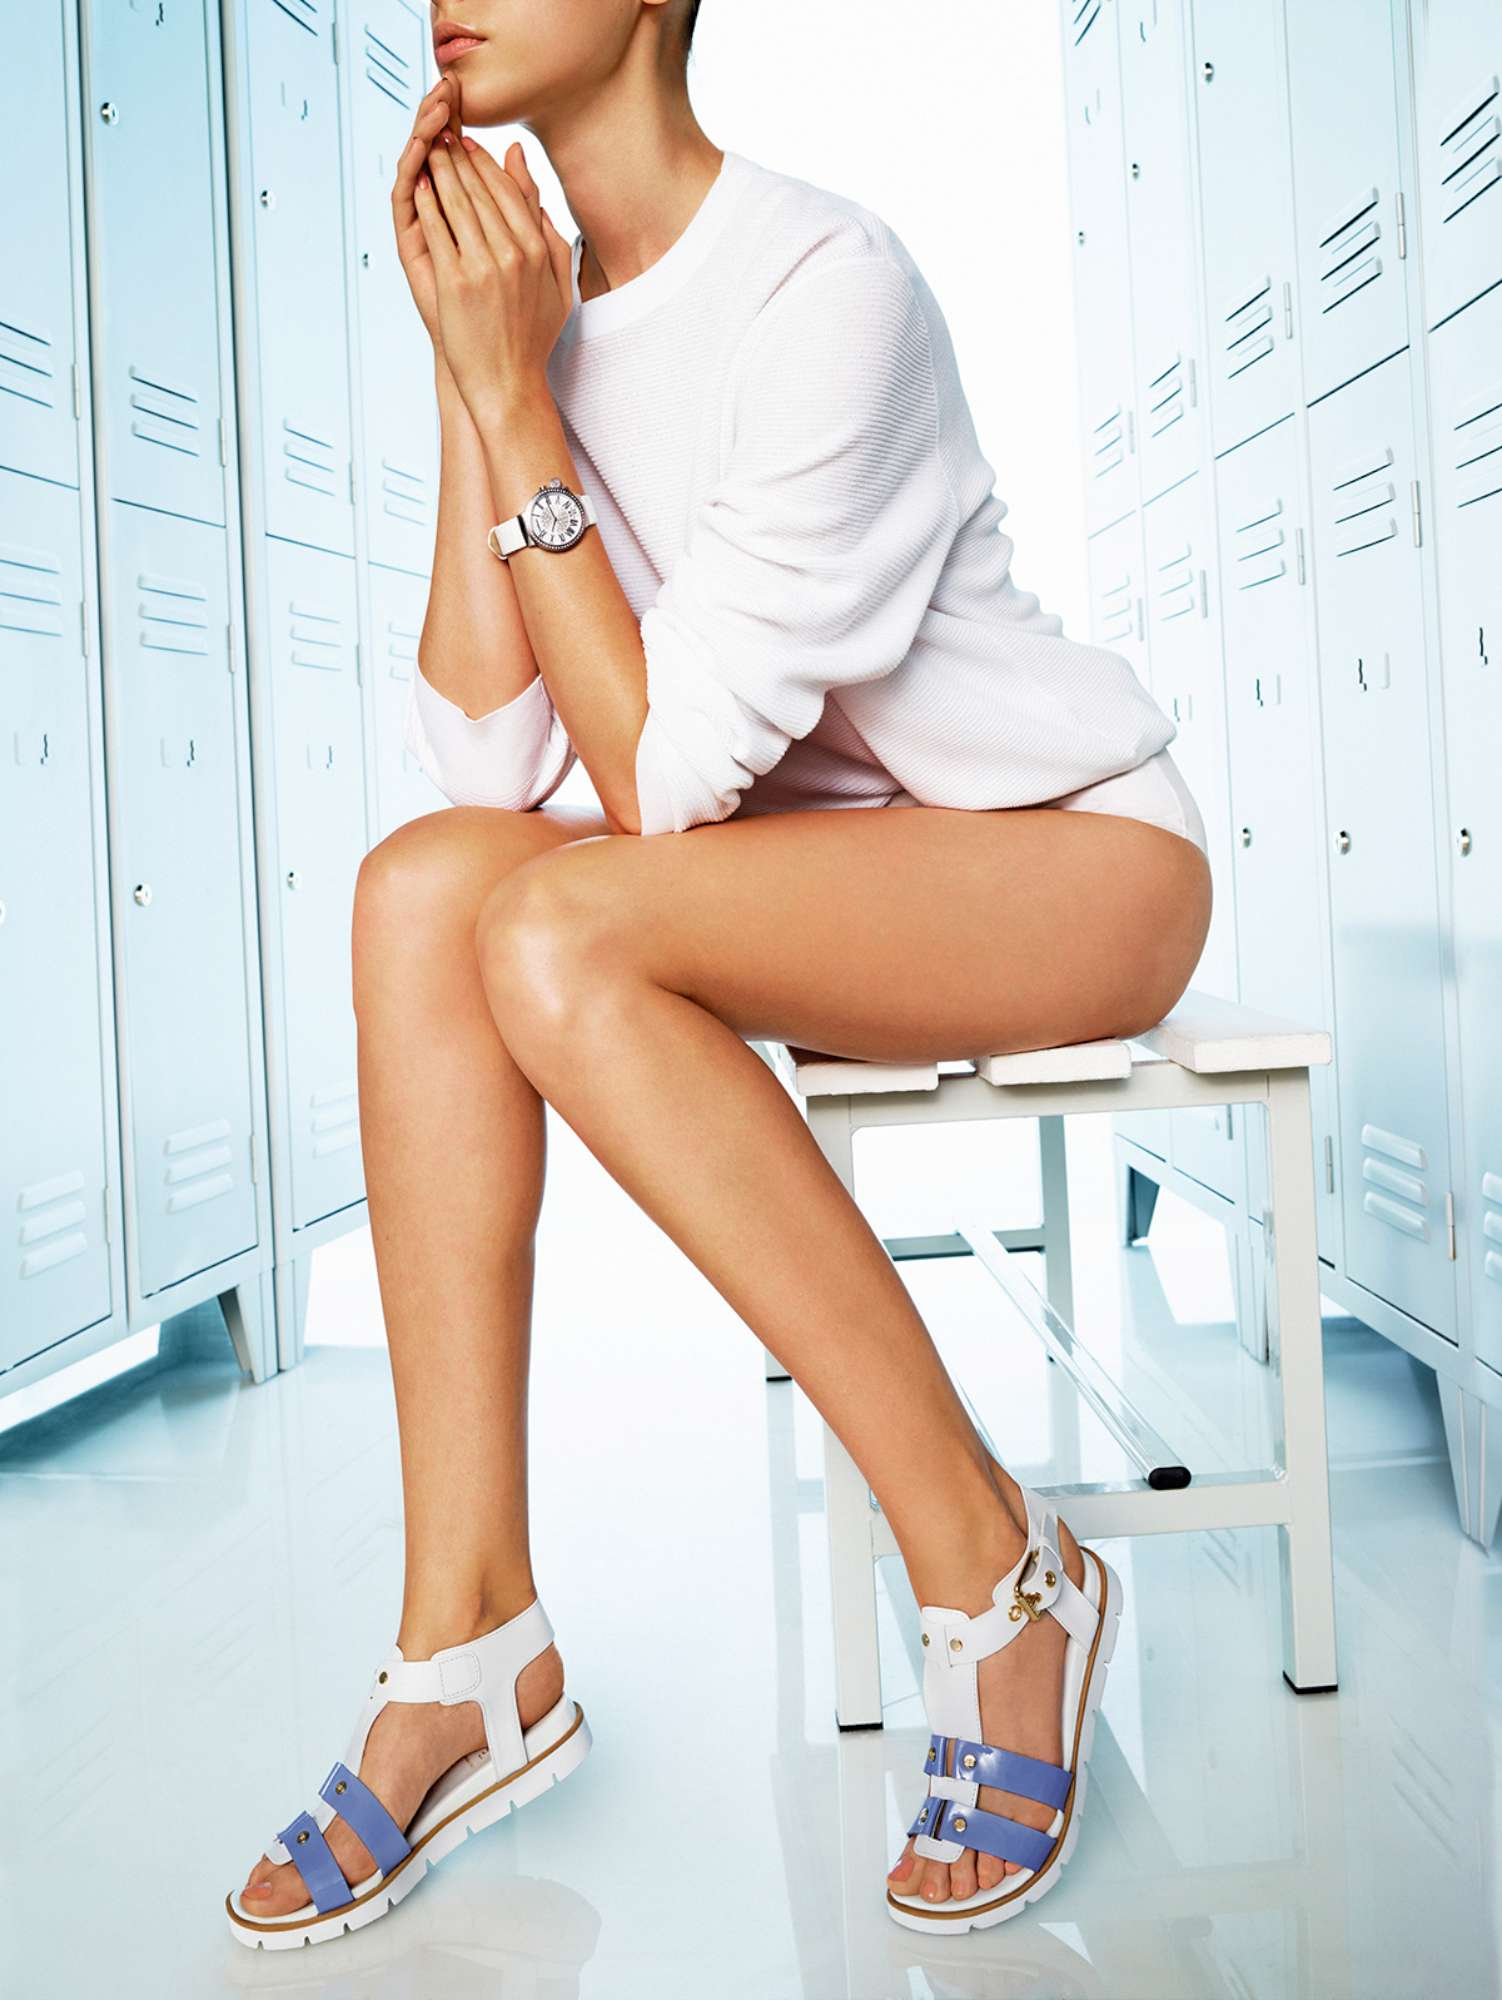 What are you looking at? The watch? The sandals? Baldinini spring/summer 2015 campaign